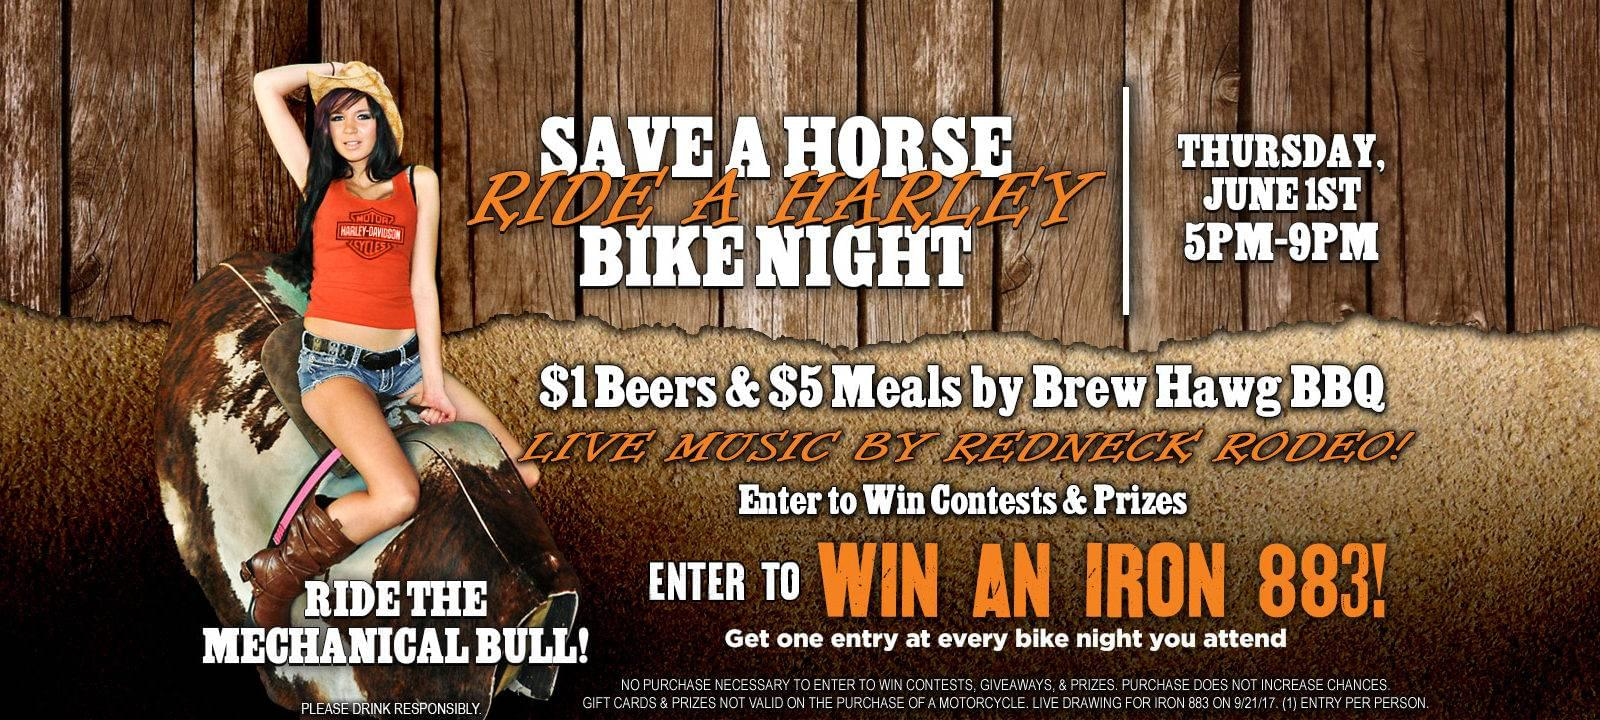 20170601-1800x720-HBHD-Save-a-Horse-Ride-a-Harley-Bike-Night